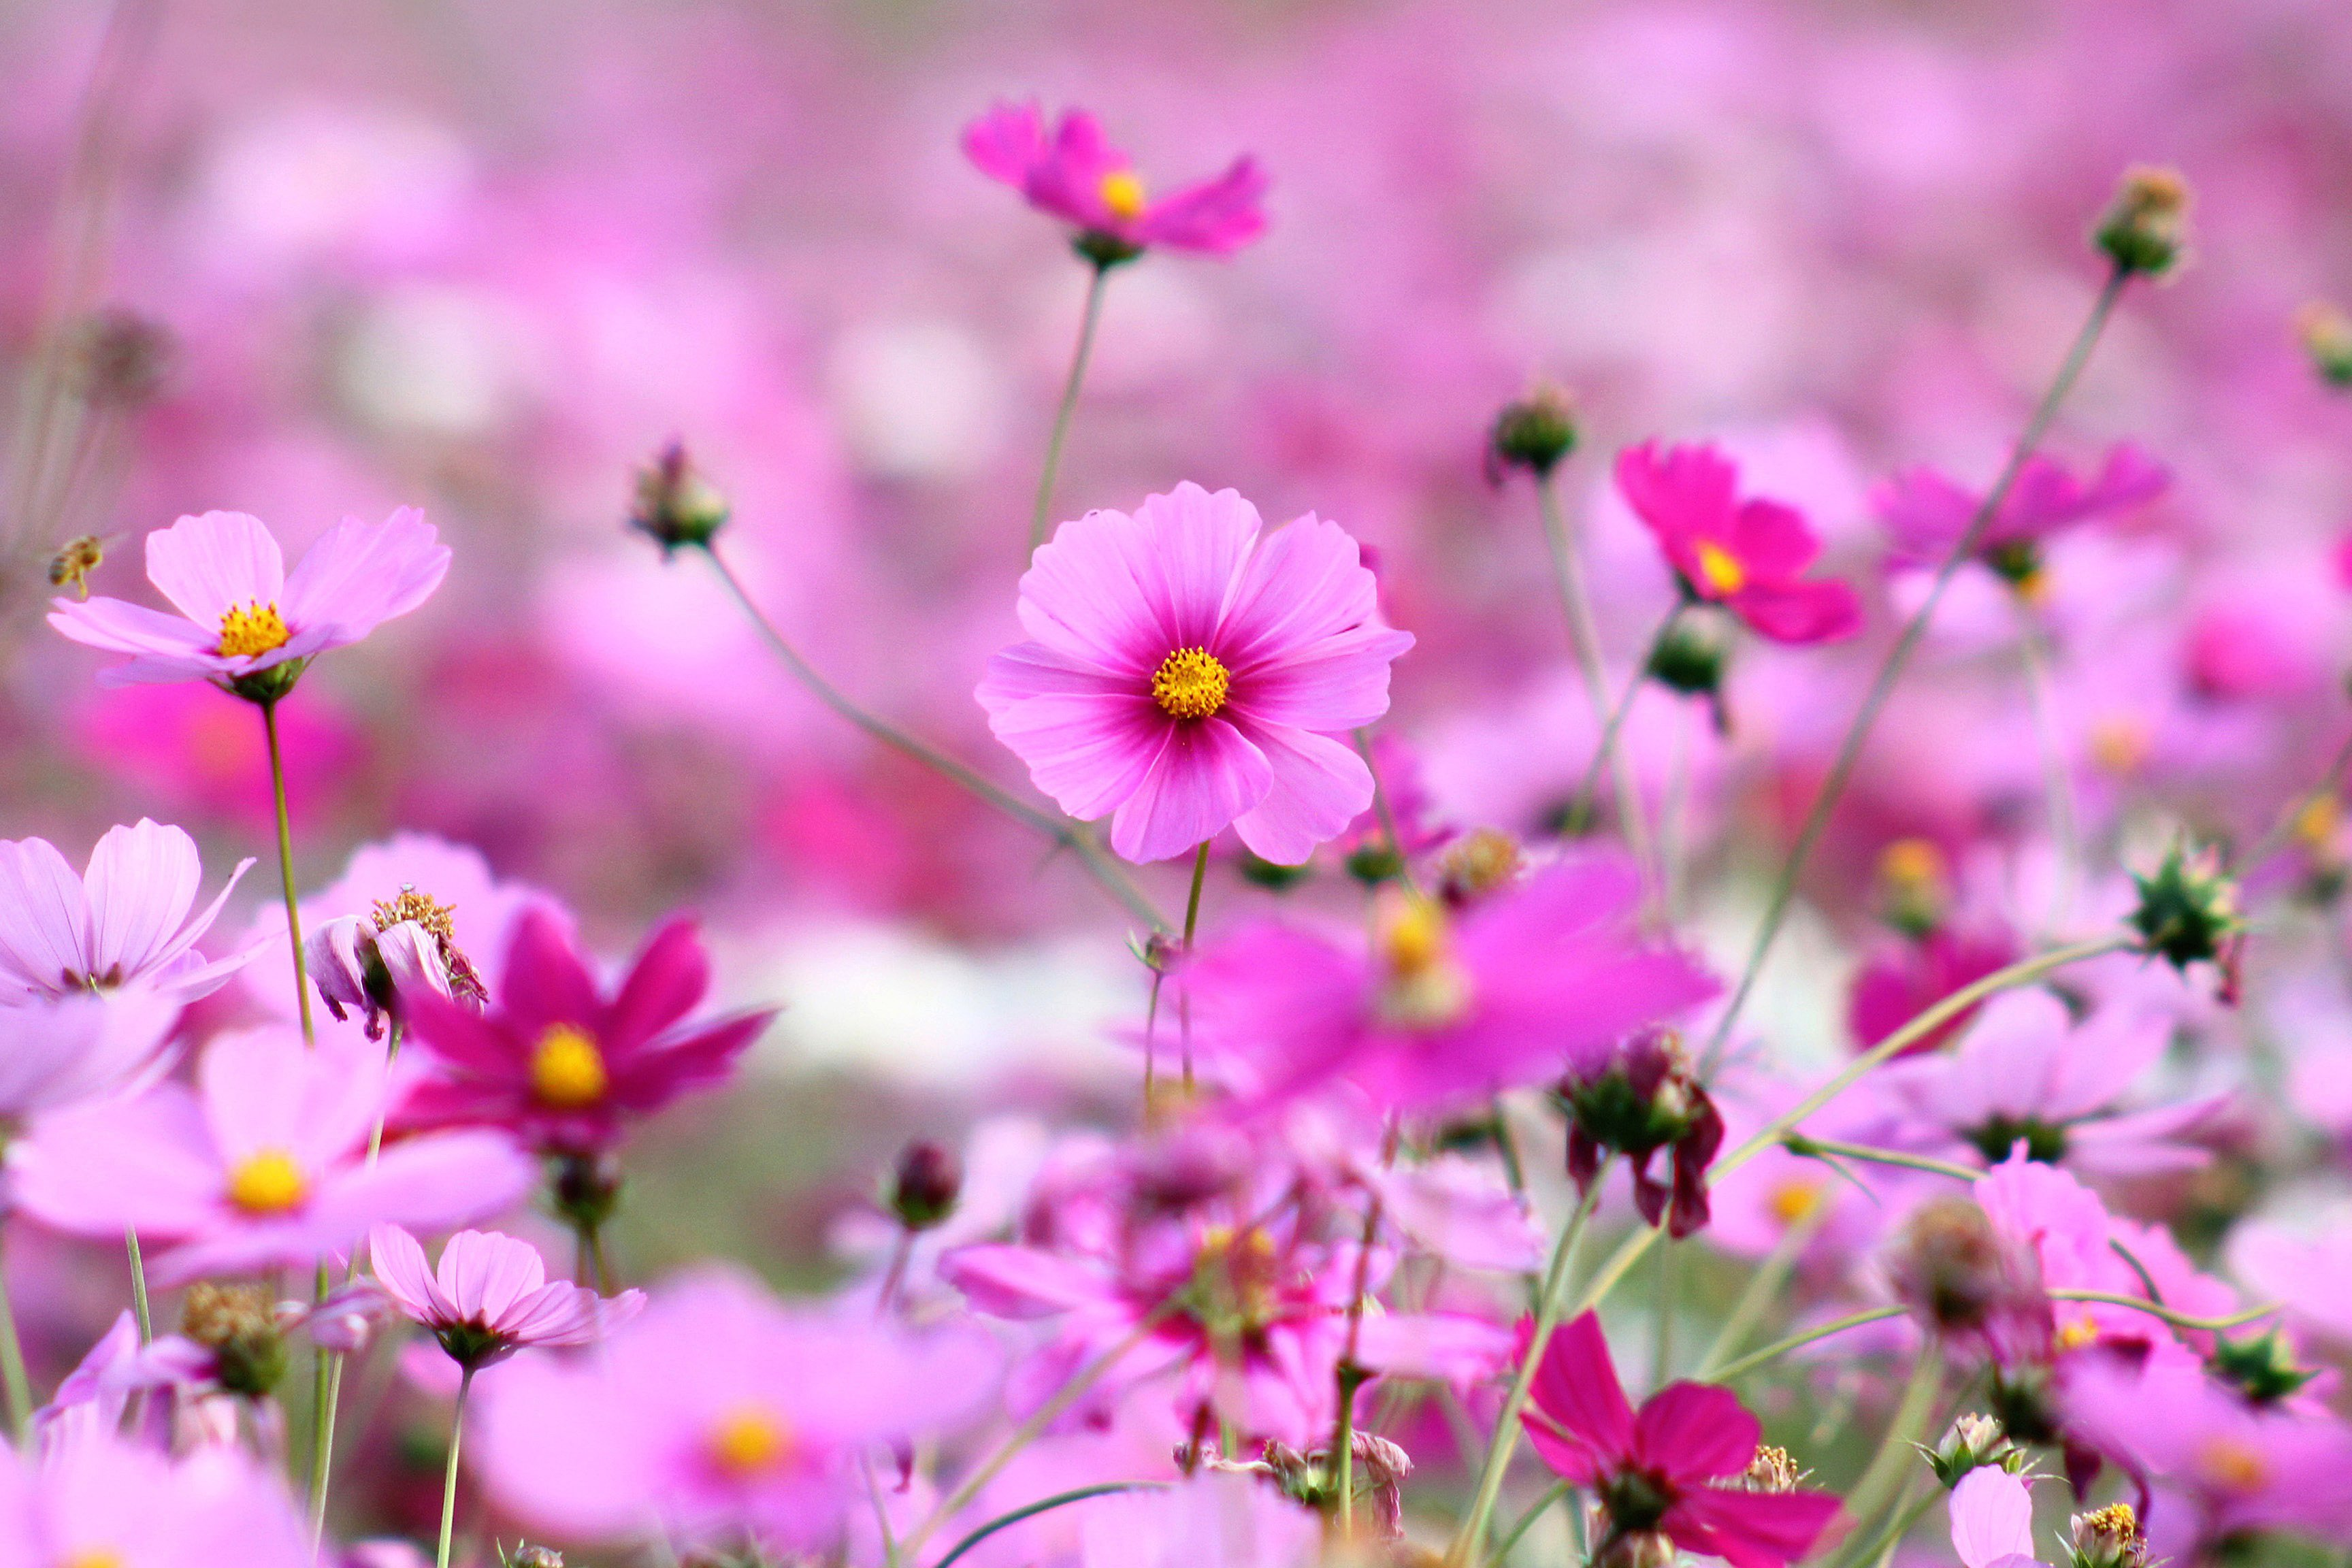 Pink Little Flowers Wallpapers   3456x2304   1831486 3456x2304